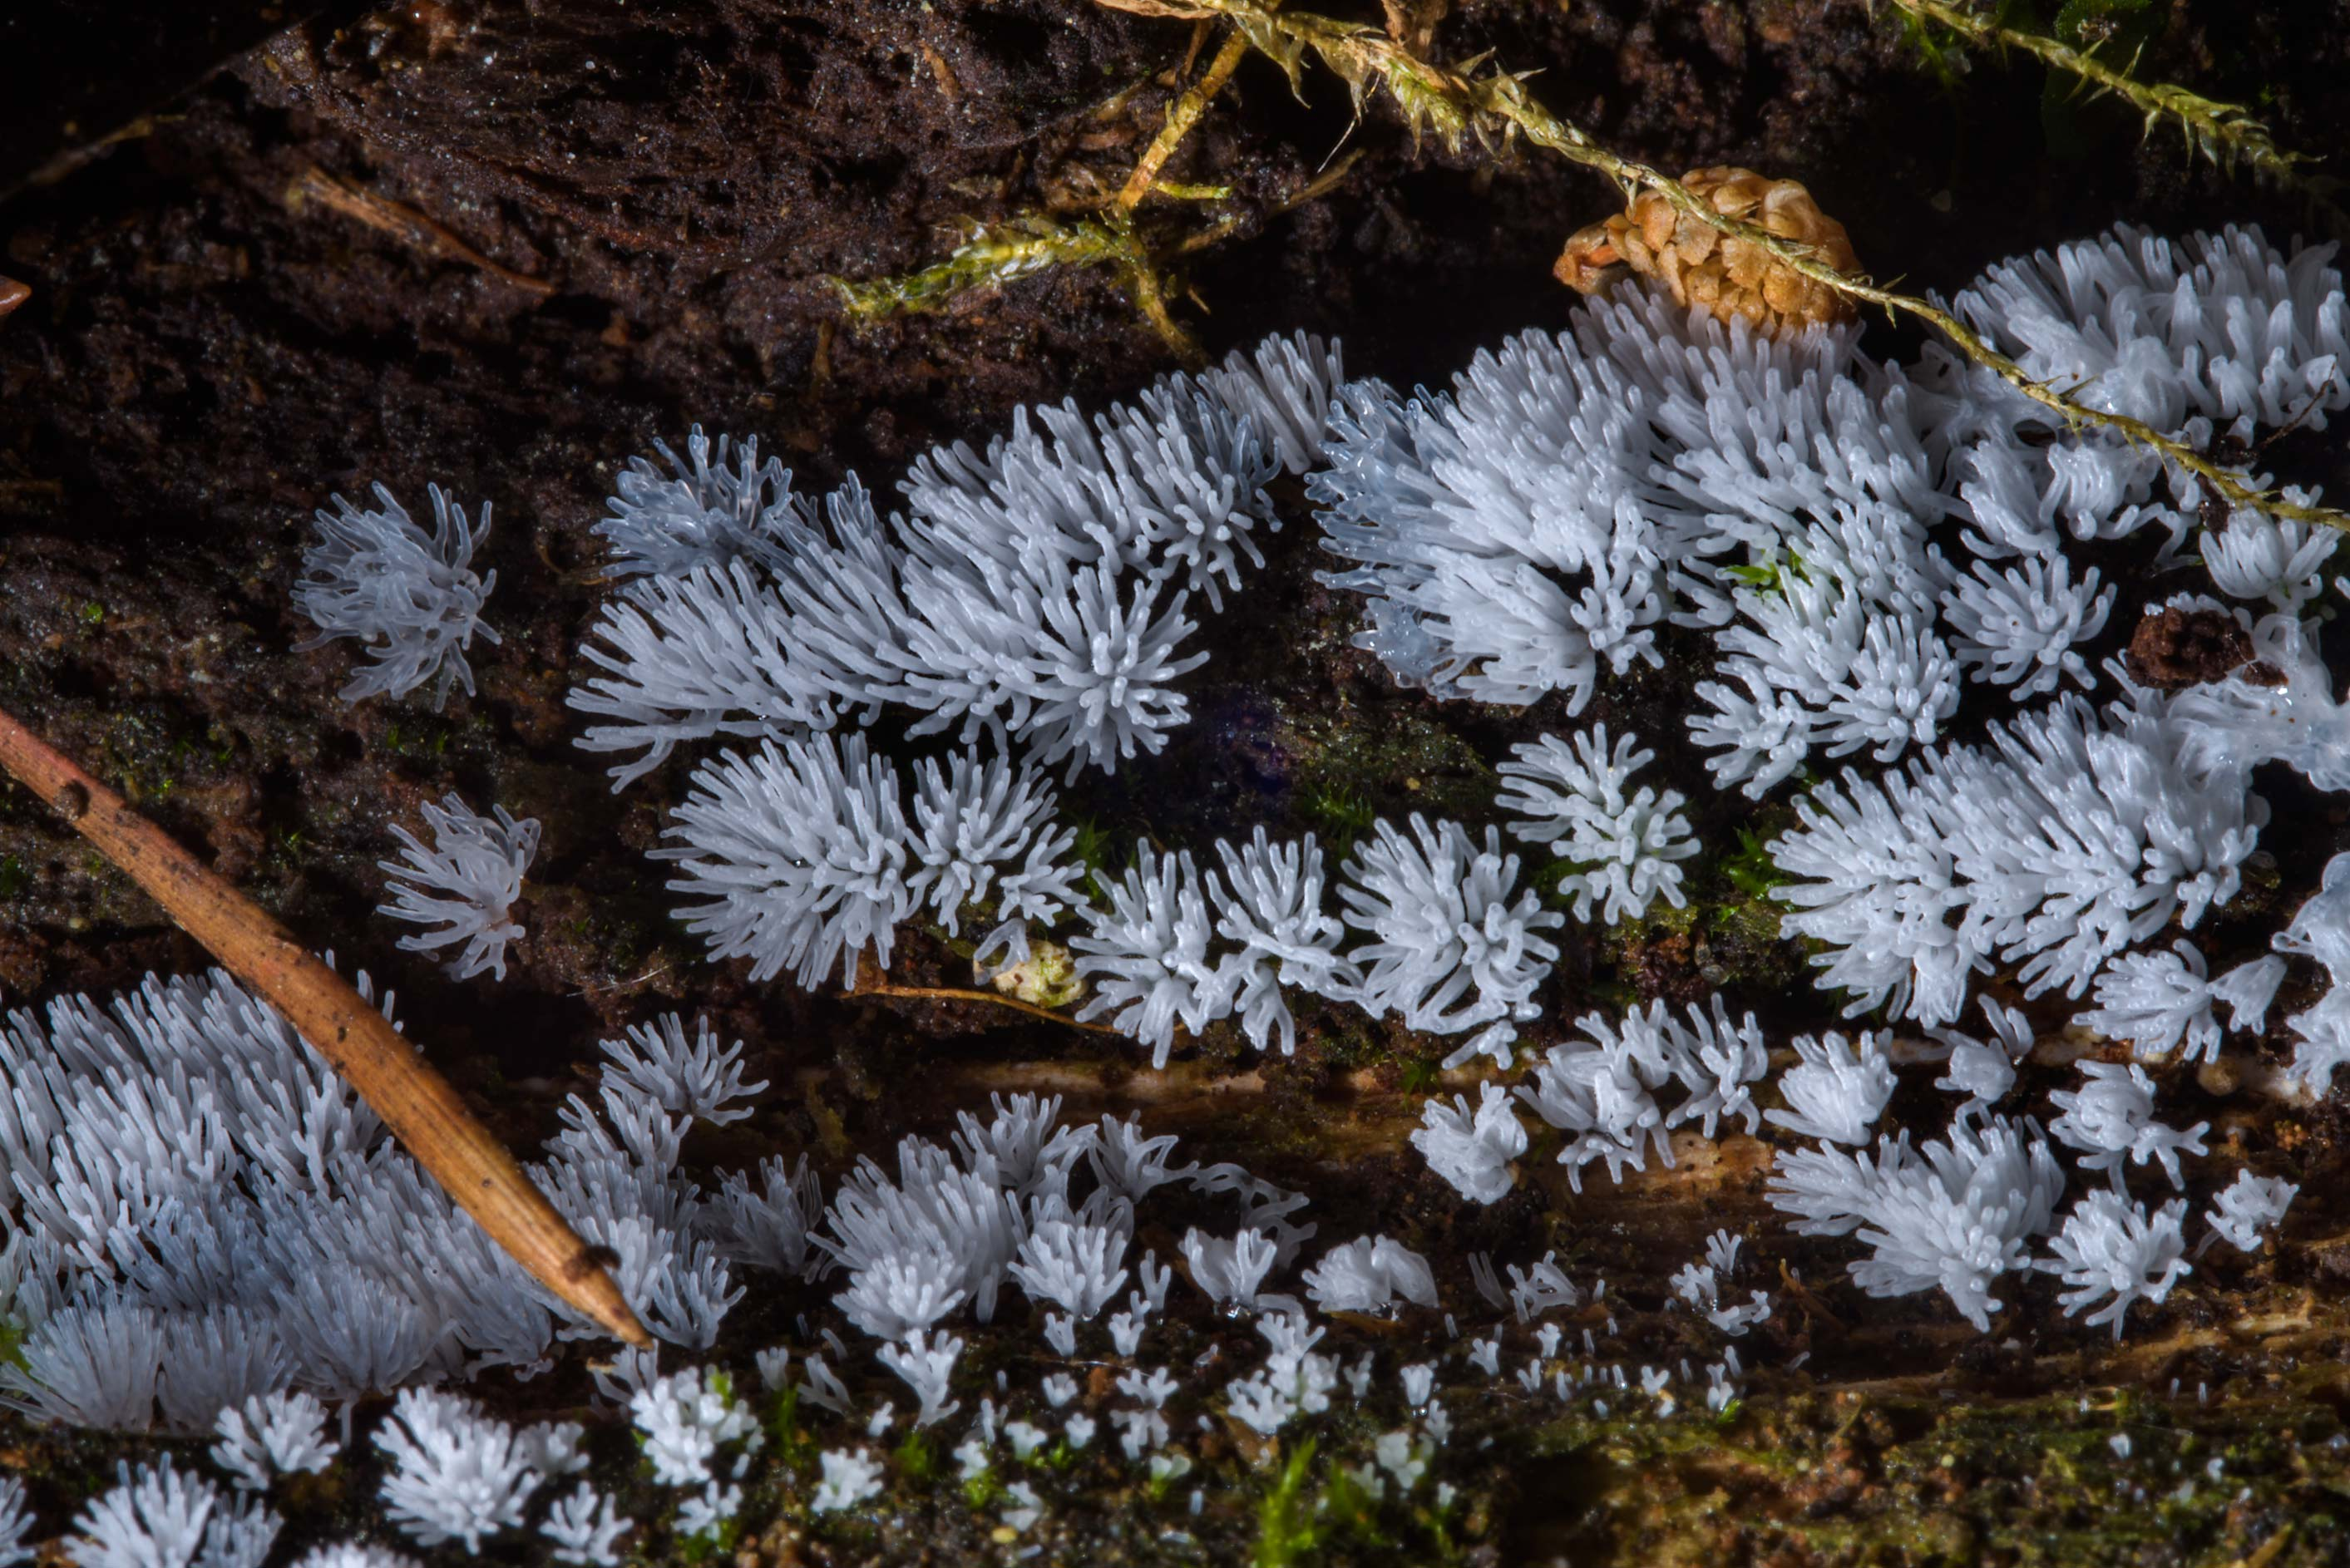 Coral slime mold (Ceratiomyxa fruticulosa) in Sosnovka Park. St.Petersburg, Russia